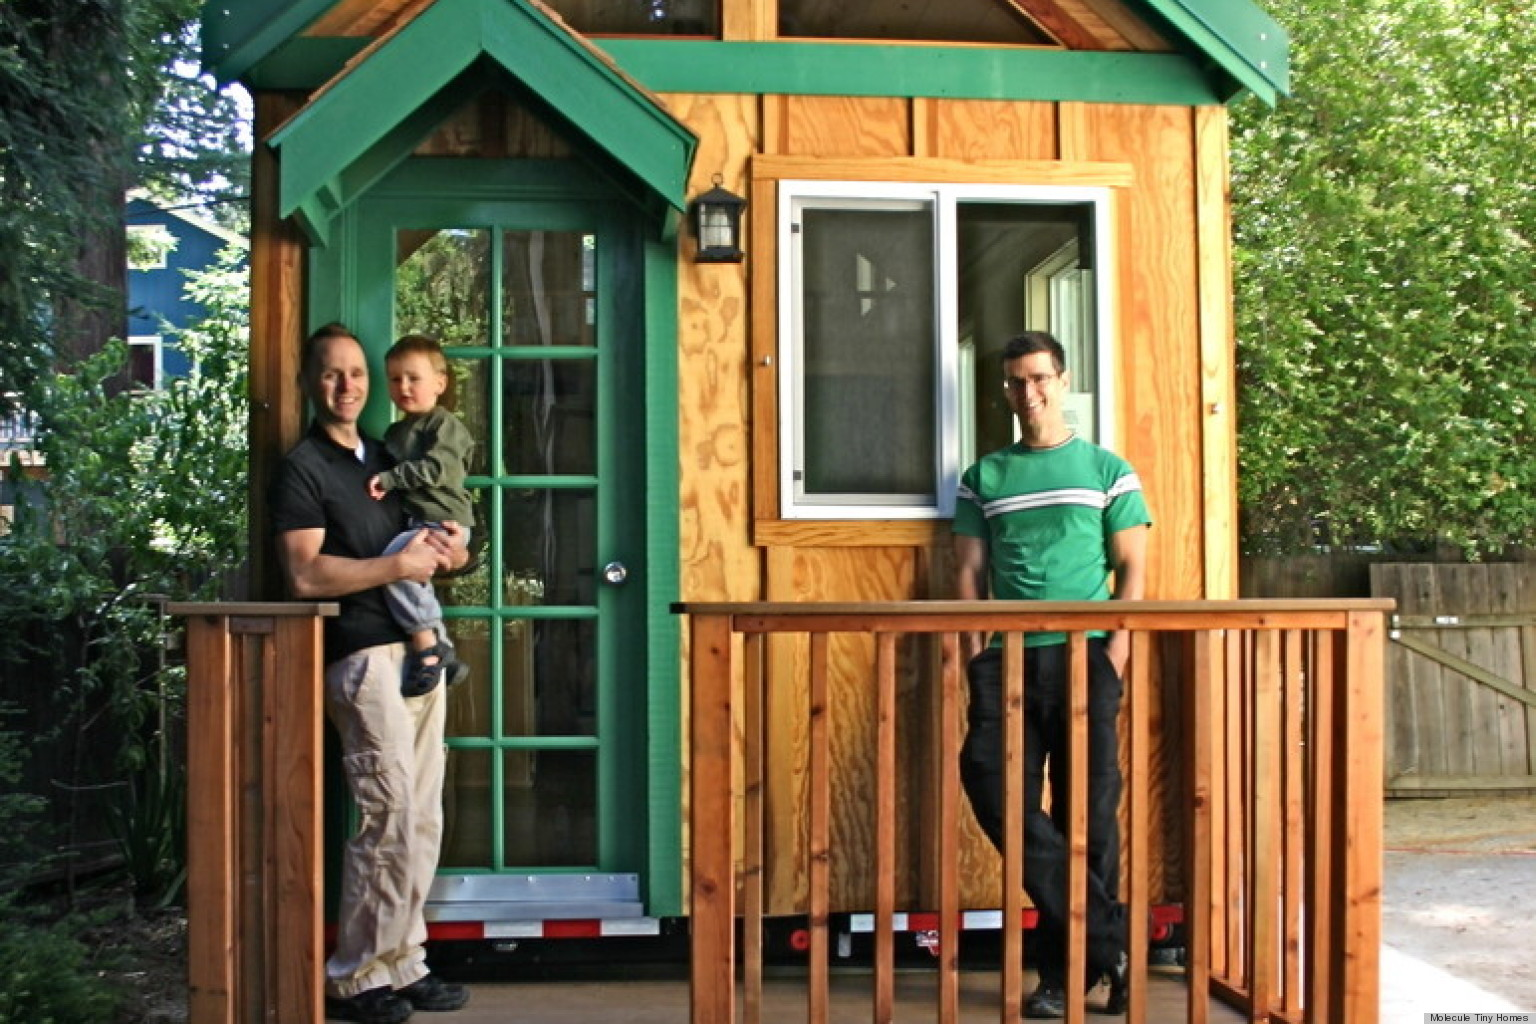 8 Tiny Homes With Adorable Tiny Porches PHOTOS The Huffington Post